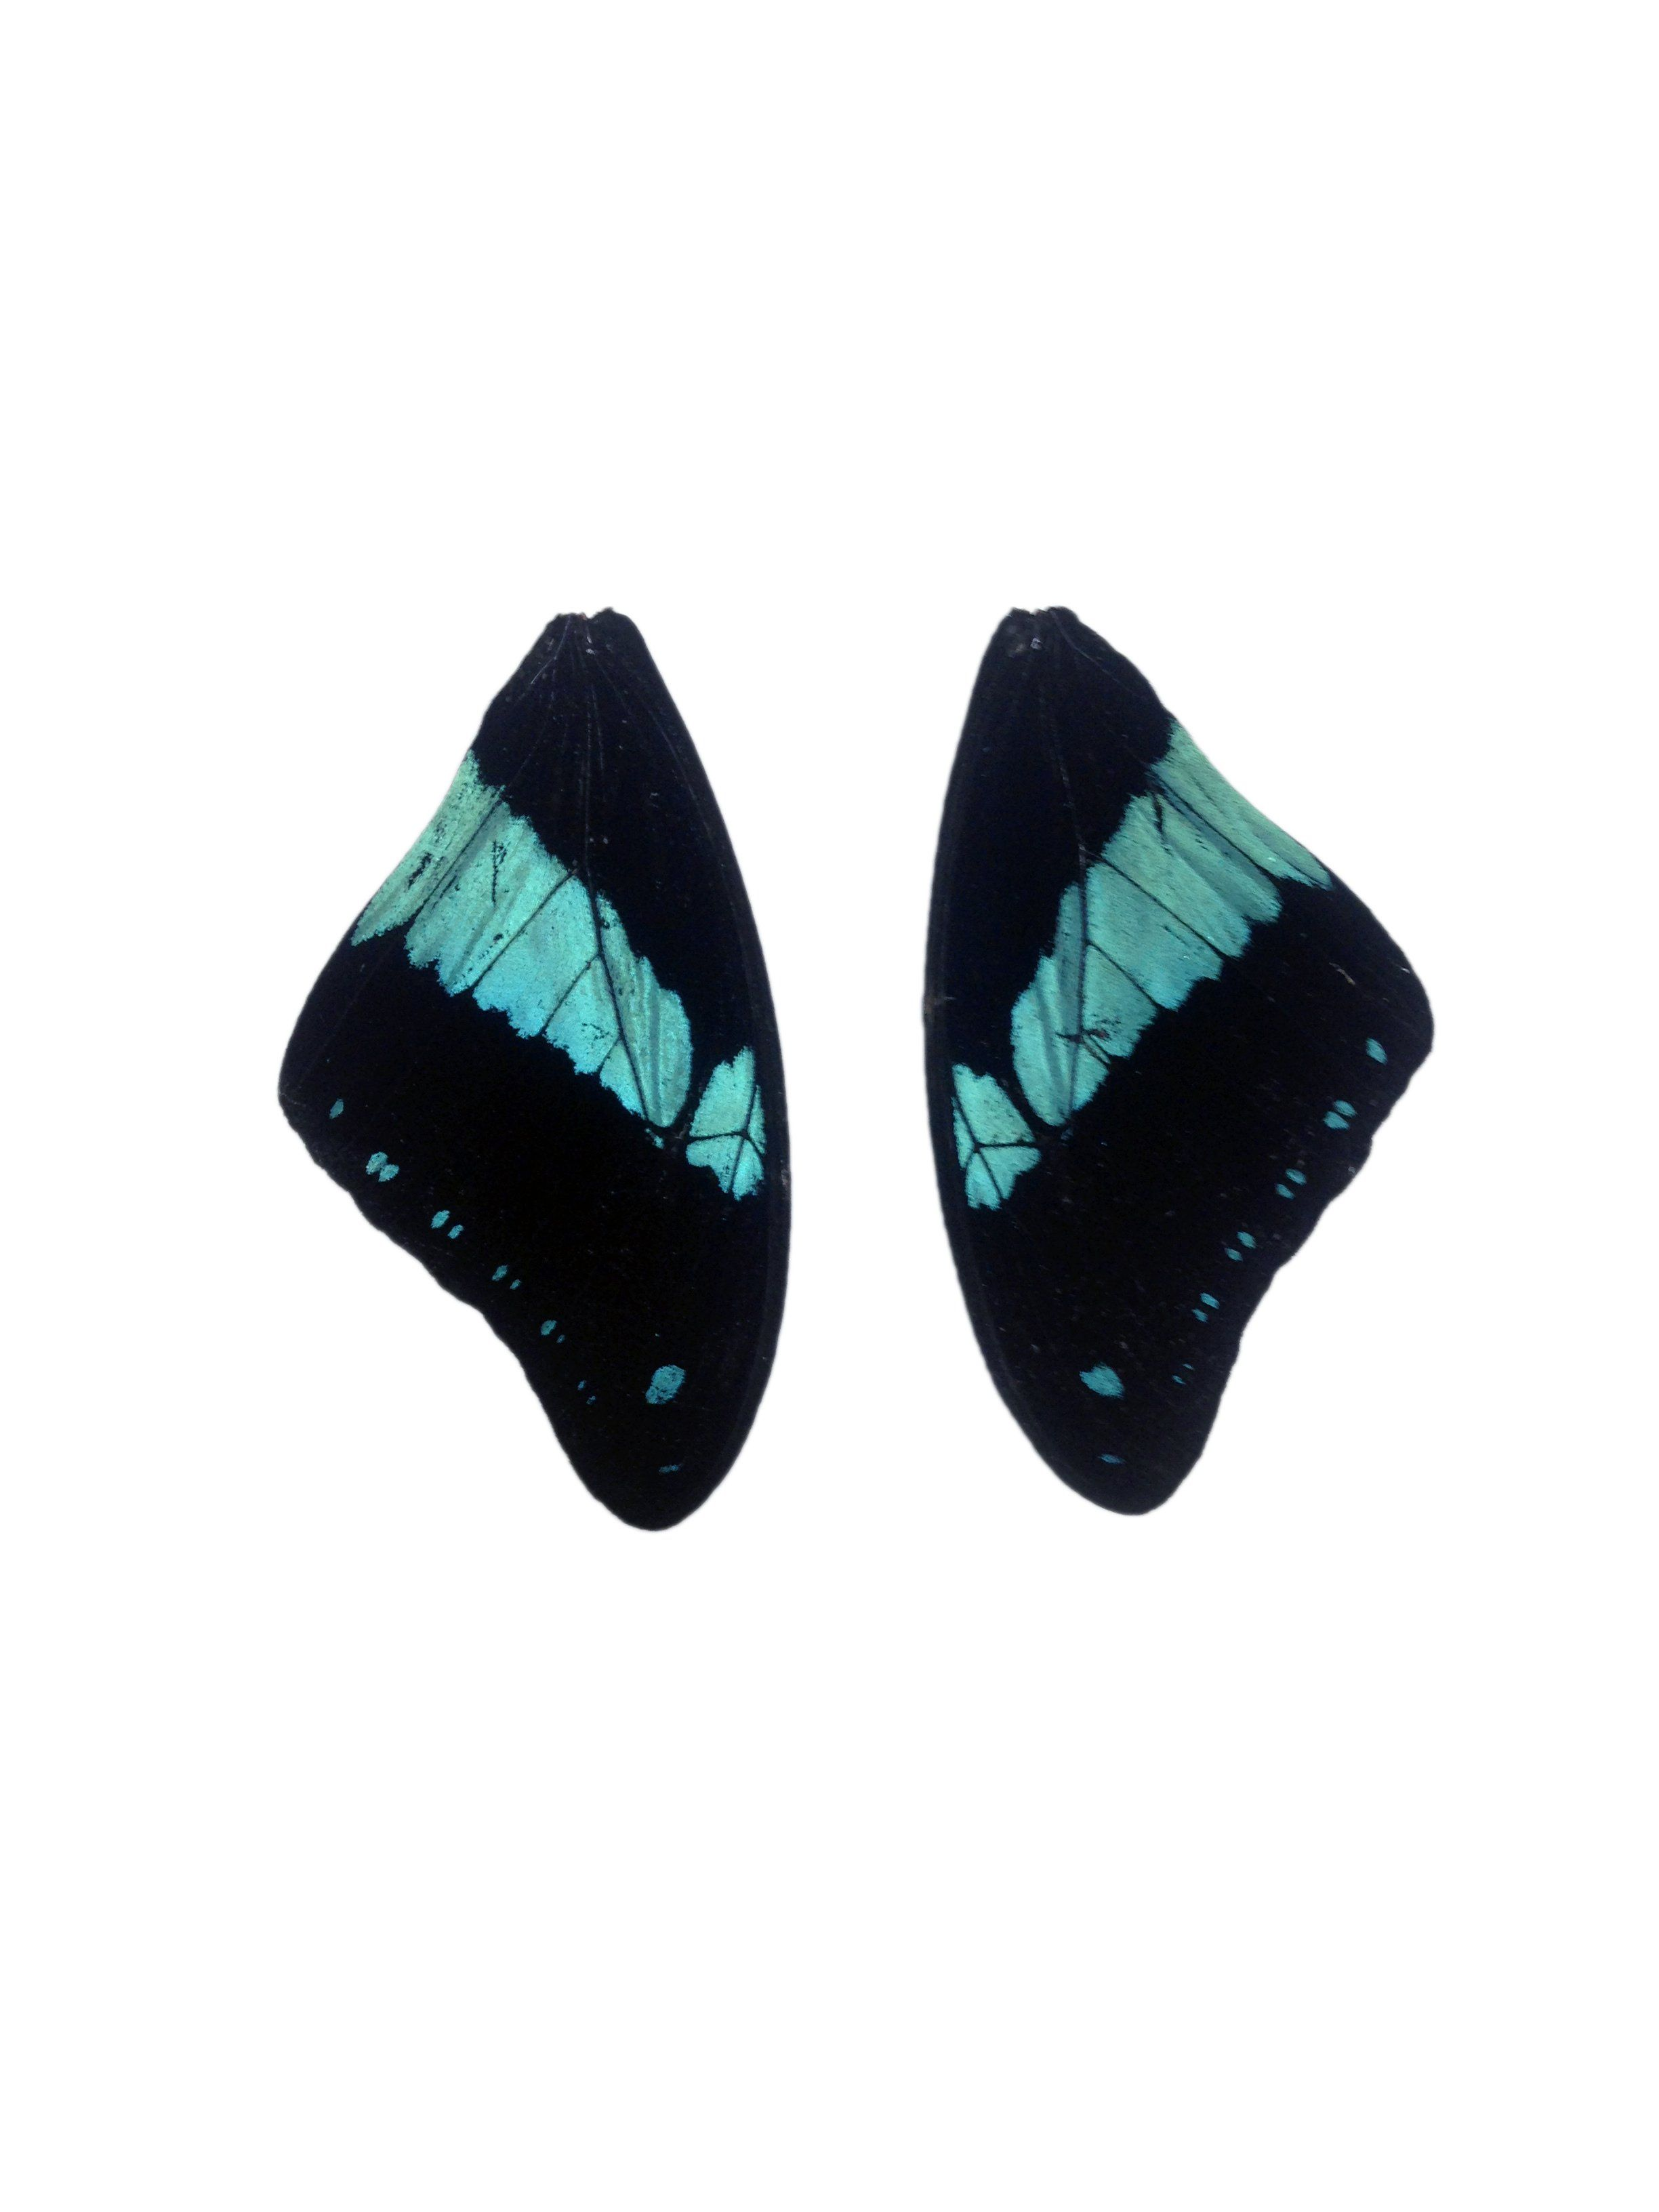 Papilio bromius butterfly wing pairs